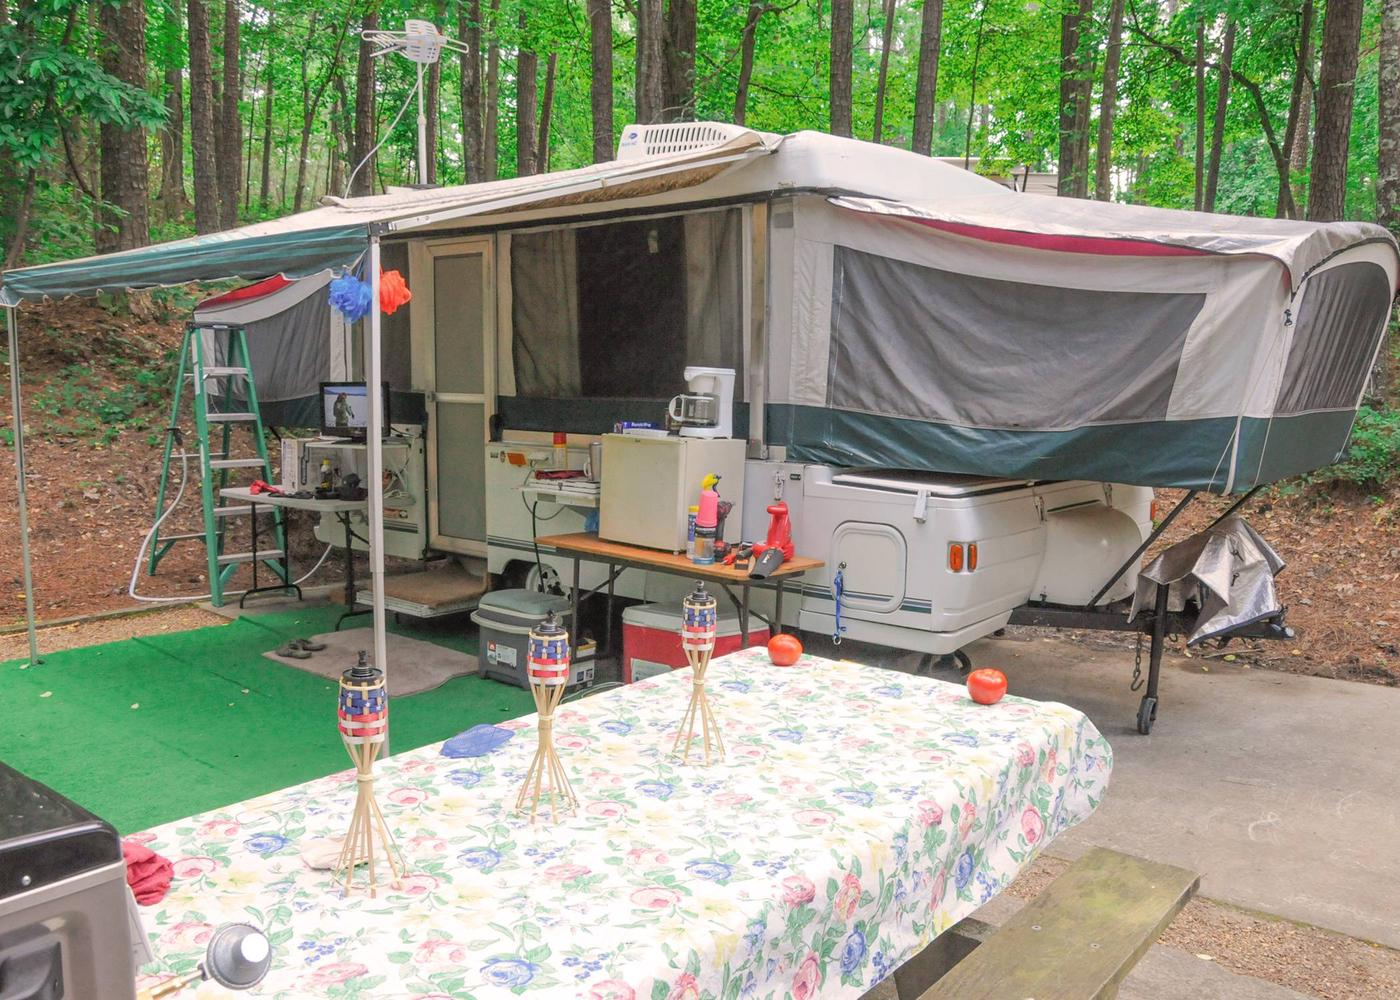 Awning-side clearance.McKaskey Creek Campground, campsite 24.